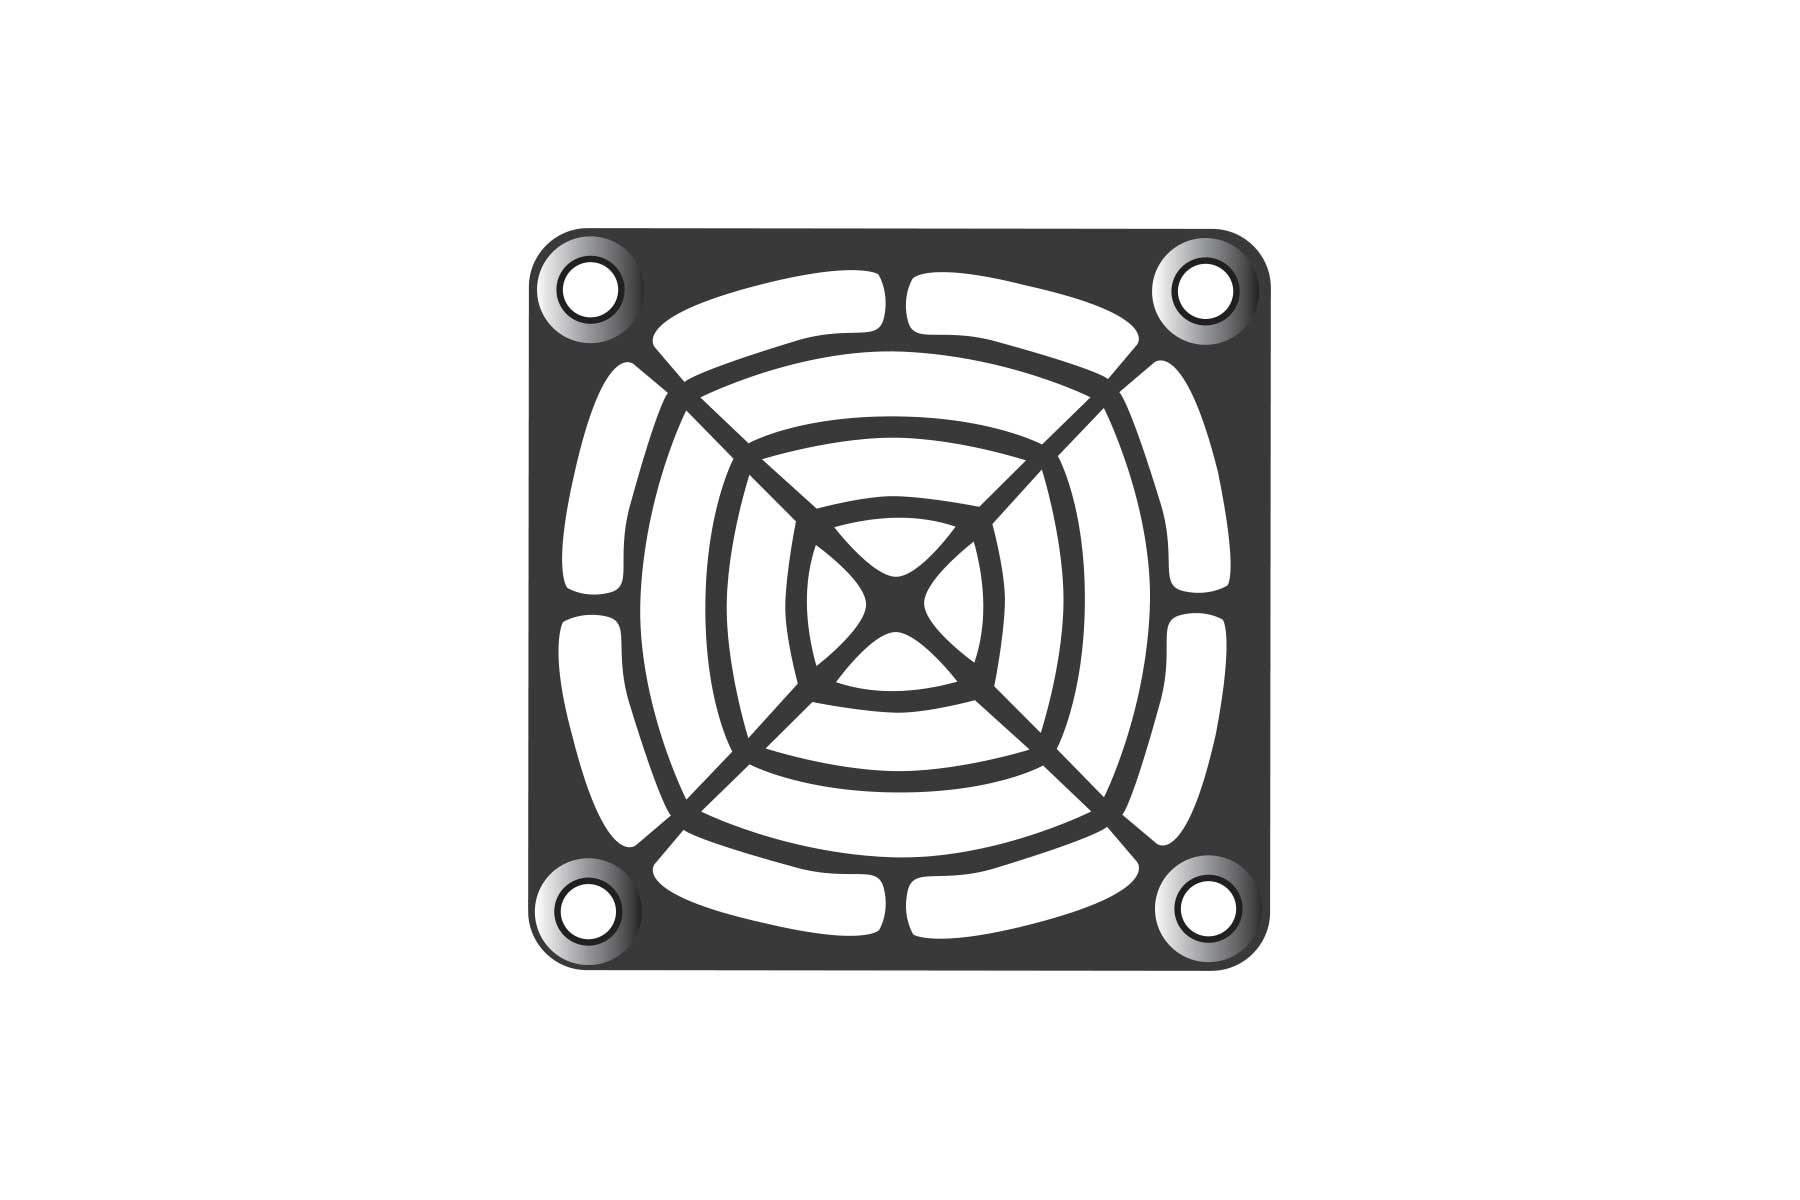 Square Axial Fan Filter Kit - PU Foam 30 or 45 PPI